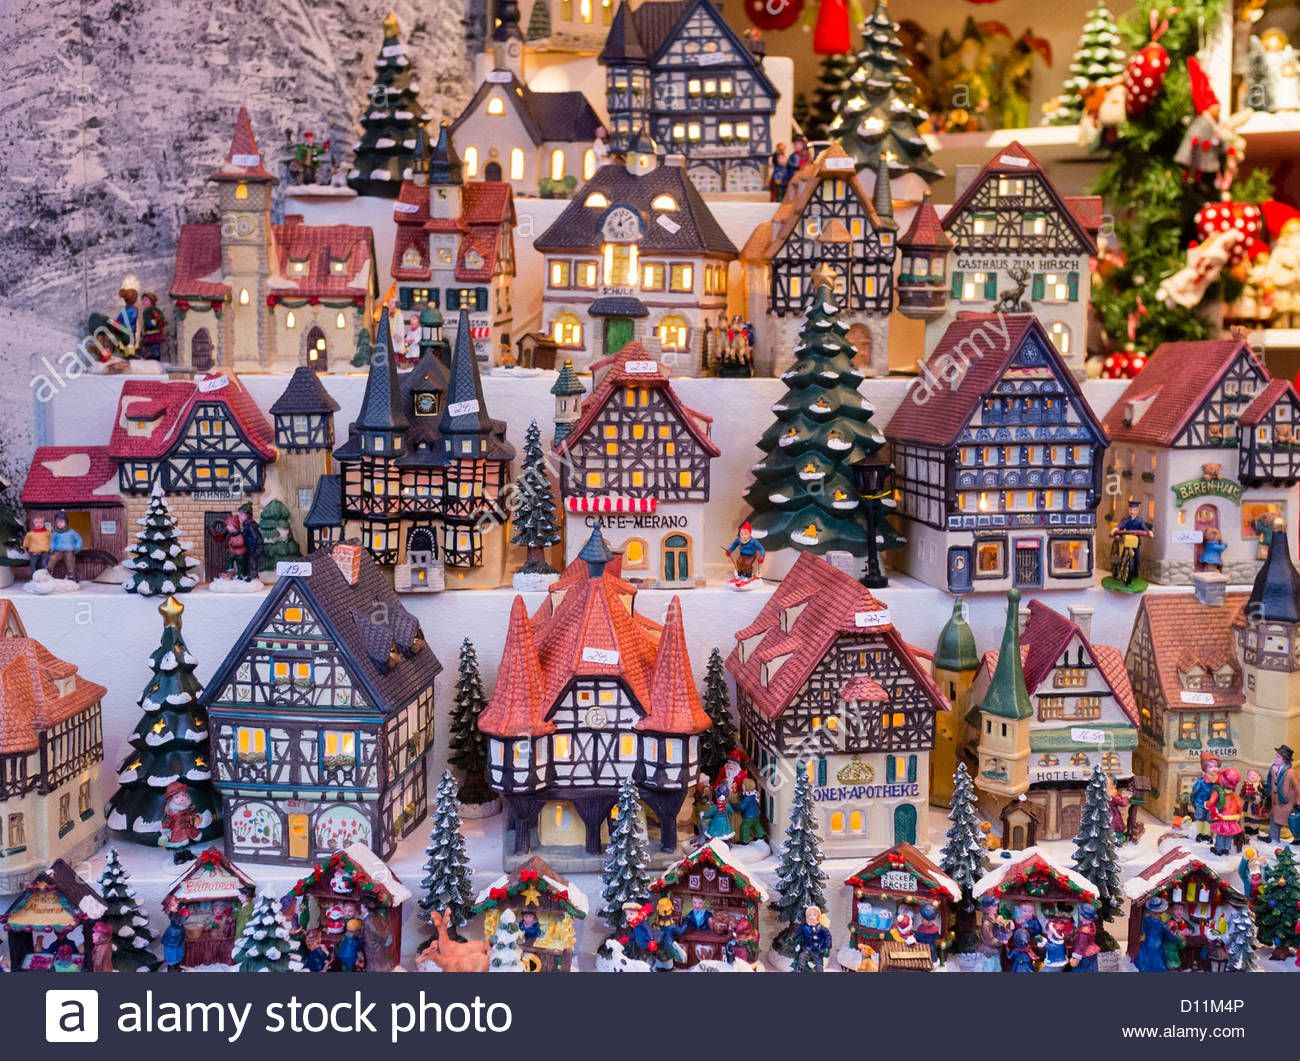 Christmas Marketinf In Limburg An Der Lahn 2021 900 Germany Ideas In 2021 Germany Beautiful Places Places To Go